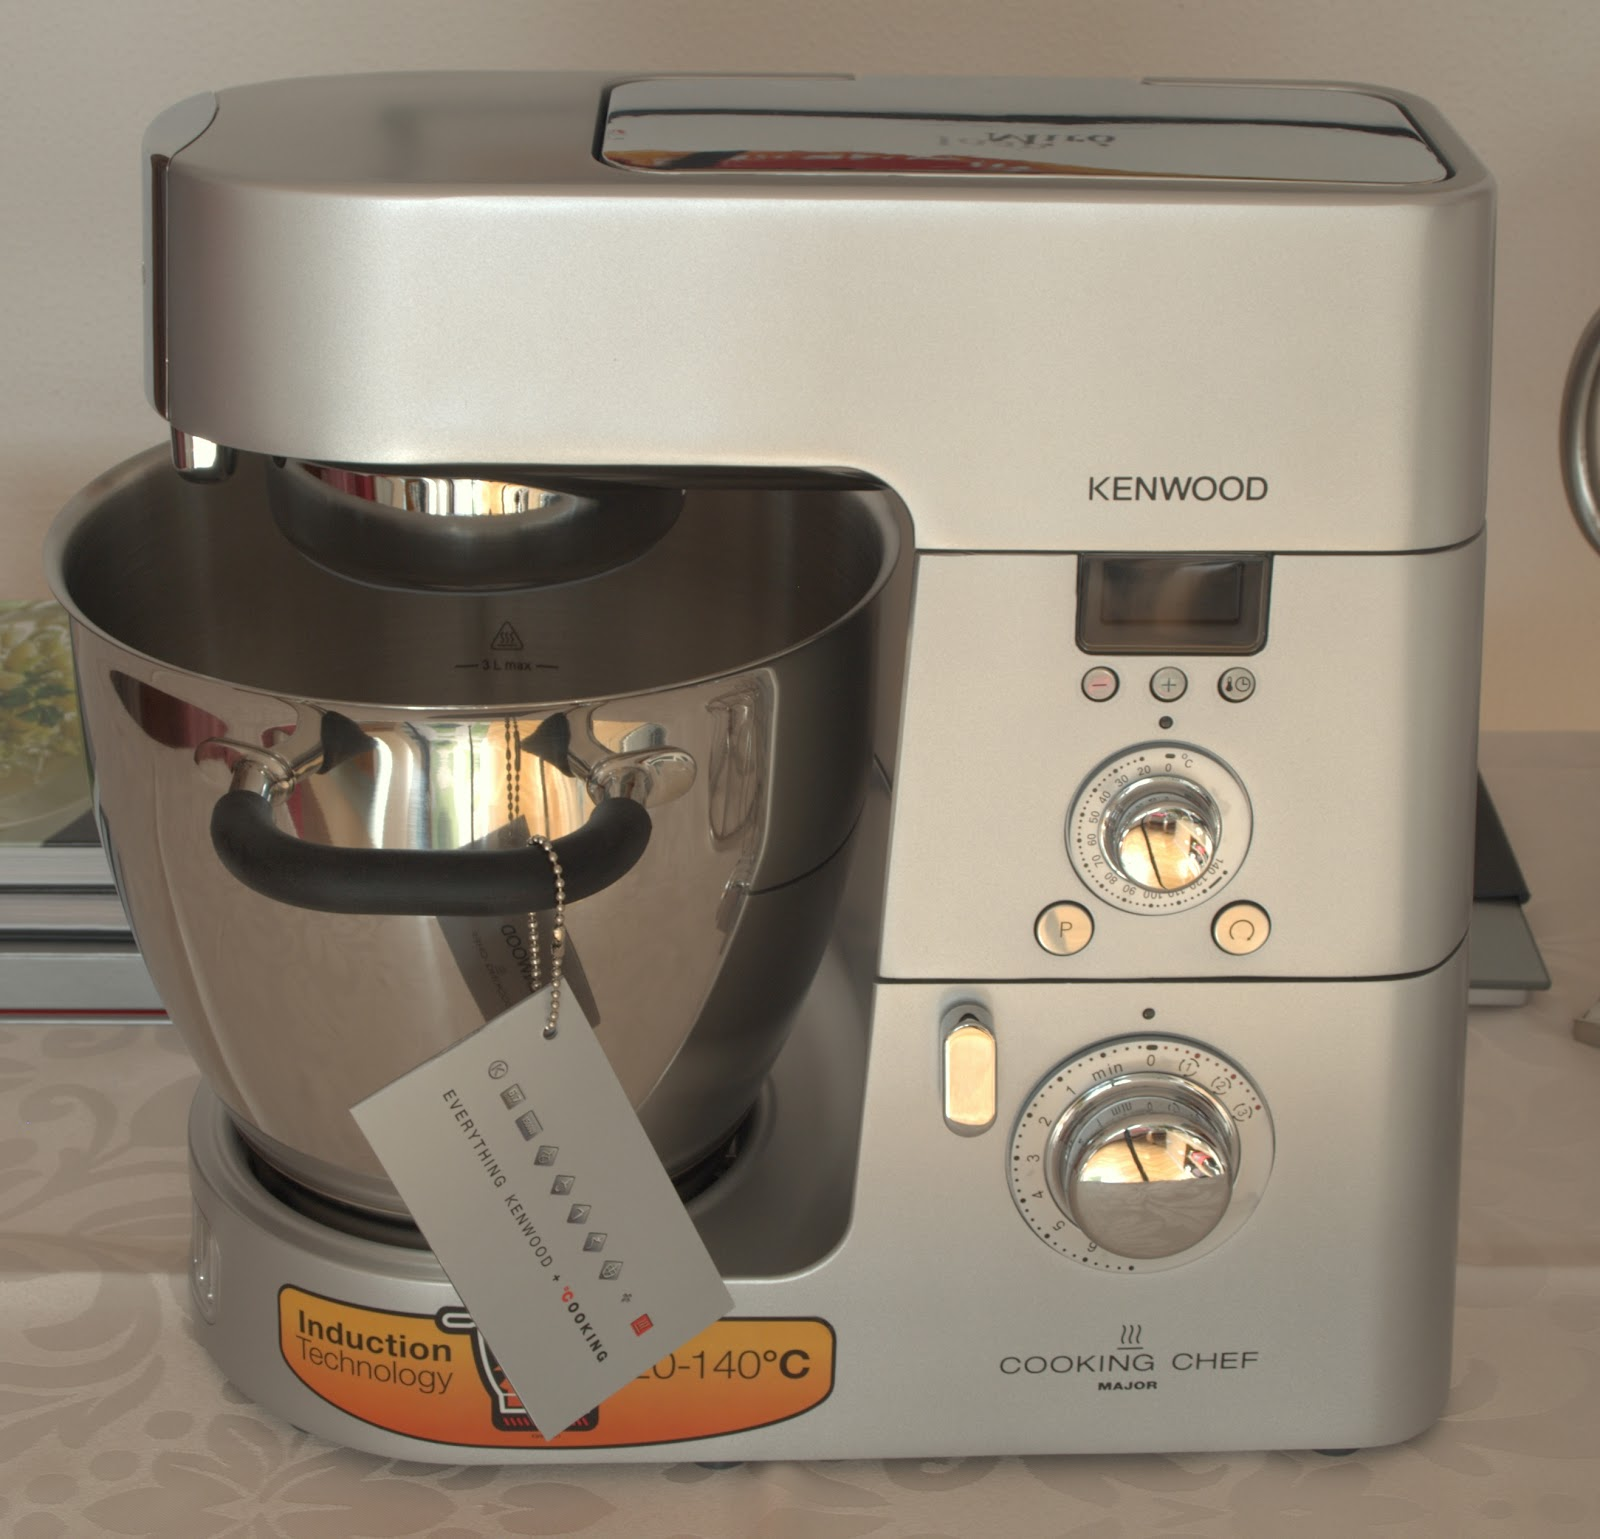 Robot De Cocina Kenwood Cooking Chef Kenwood Cooking Chef Entre Cacerolas Y Delantales